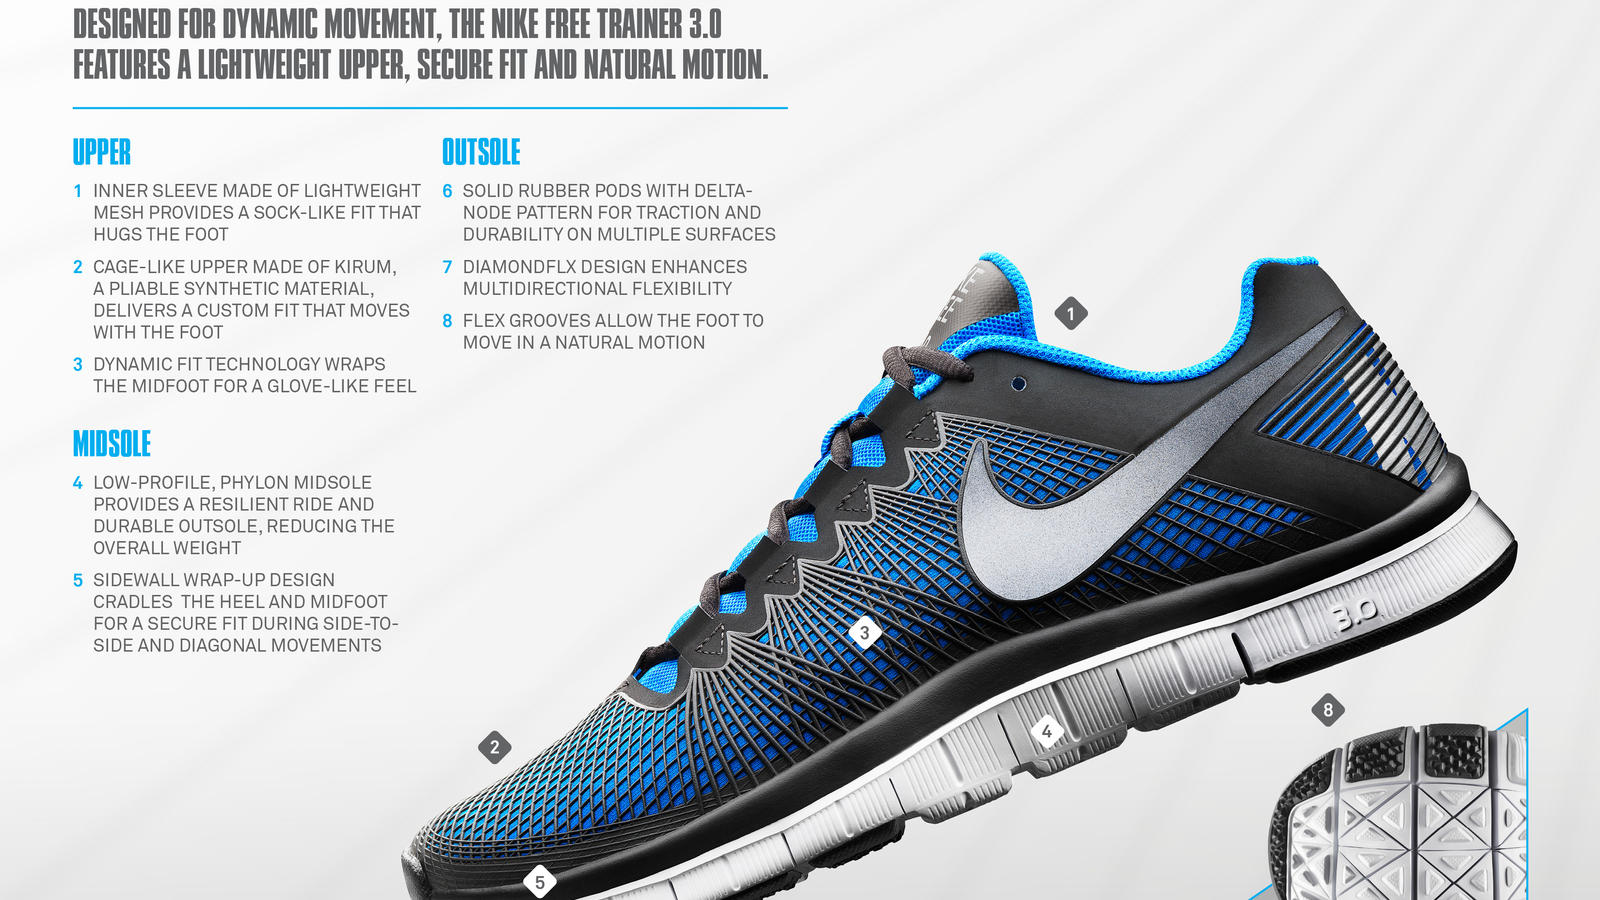 Nike Free Trainer 3.0 Tech Sheet